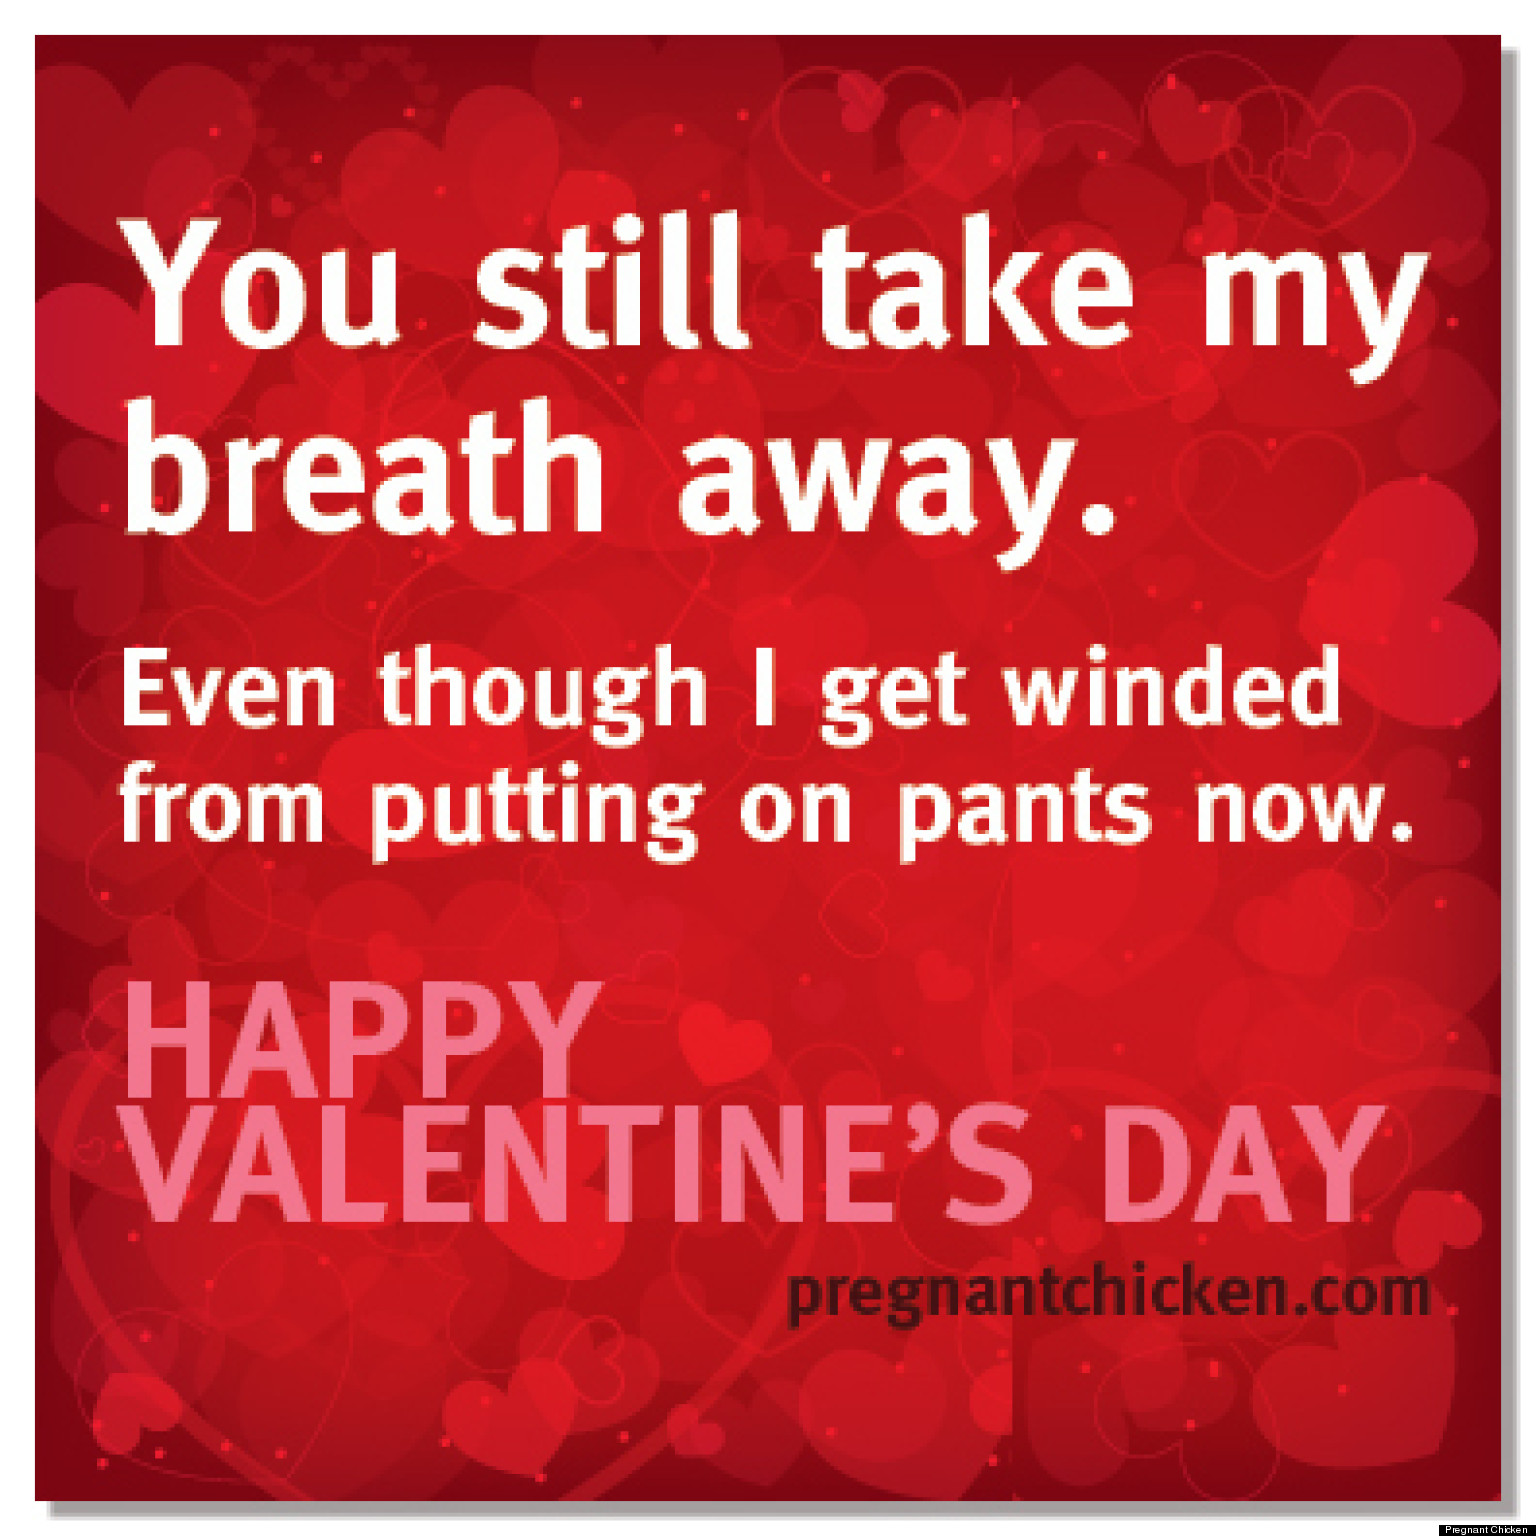 Funny Valentines For Pregnant Women To Give Their Partners